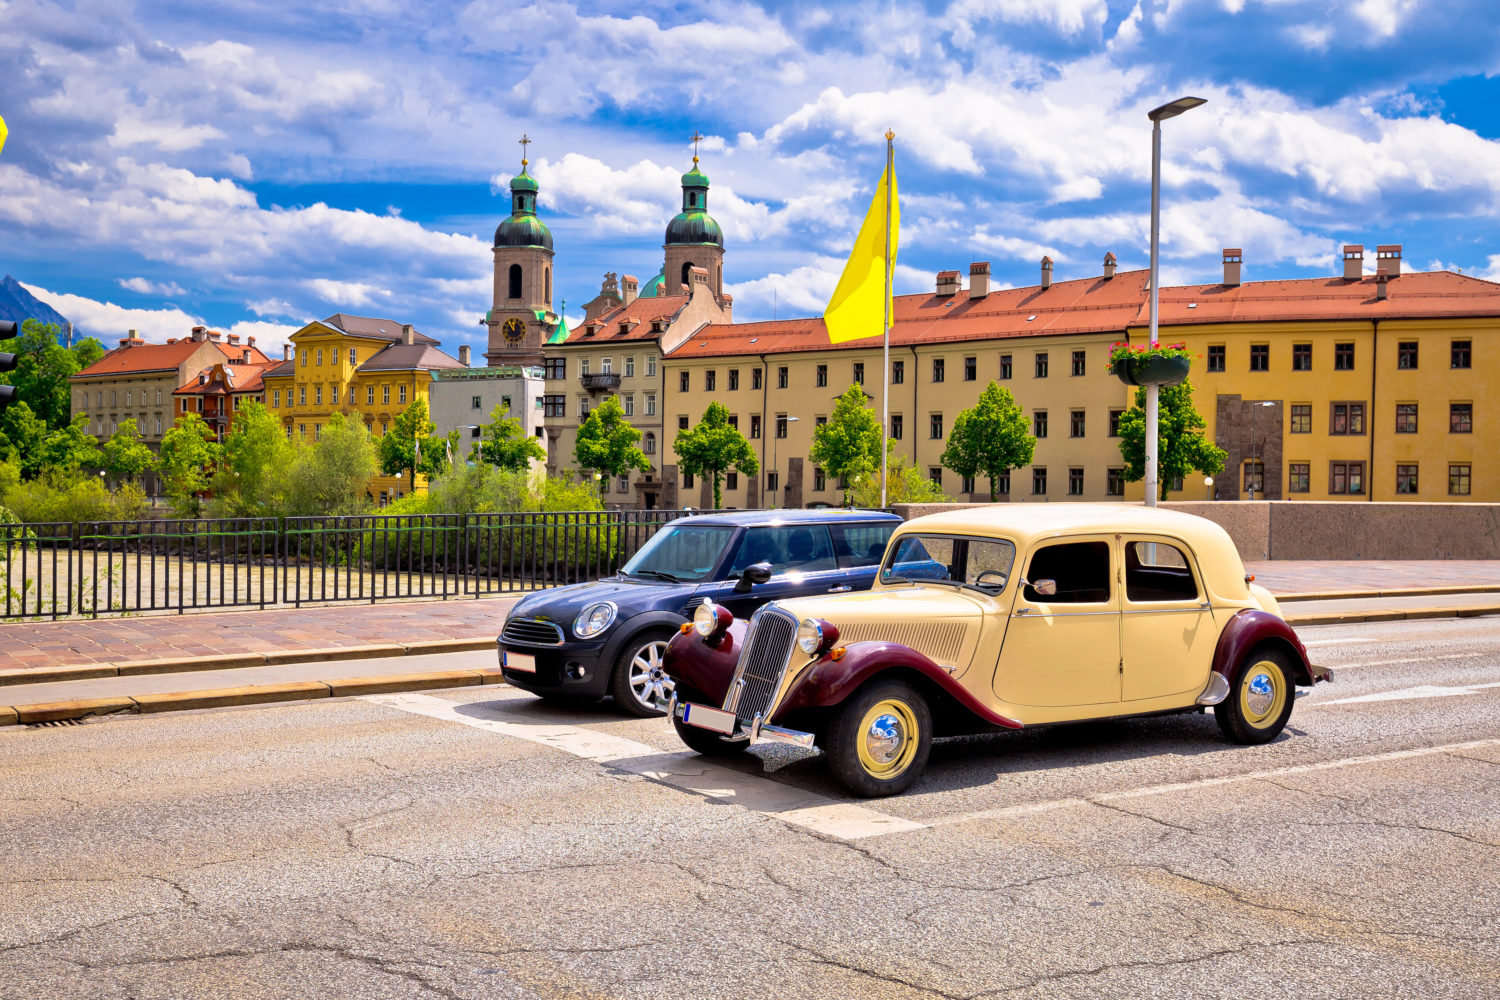 Vintage car for private transfer from Budapest to Vienna on a road in Tirol, Austria